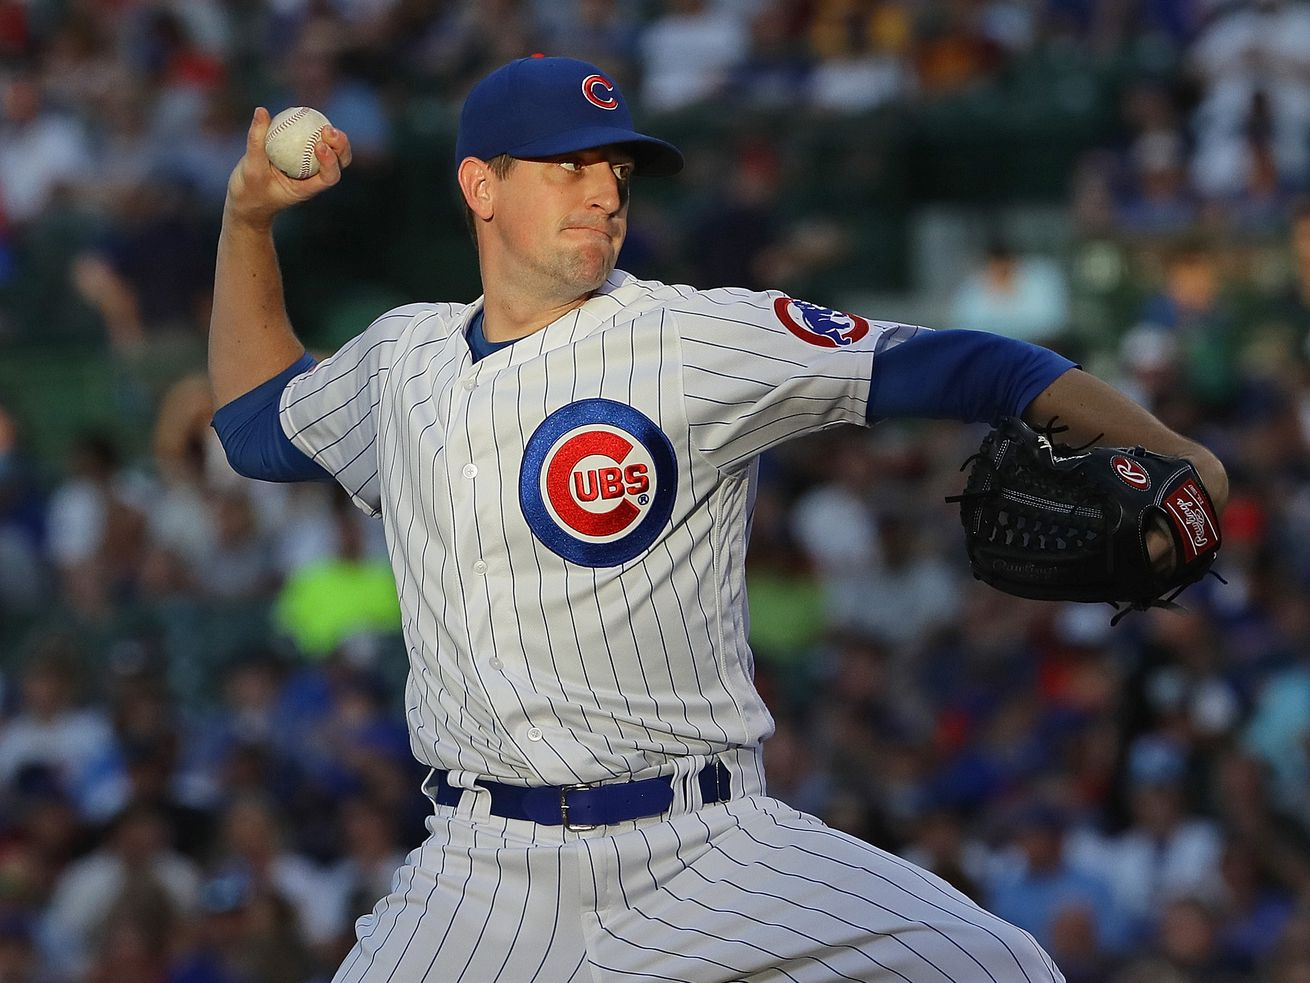 Kyle Hendricks keeps Cubs starters rolling, but bullpen, infield can't contain Reds in 7th, 8th